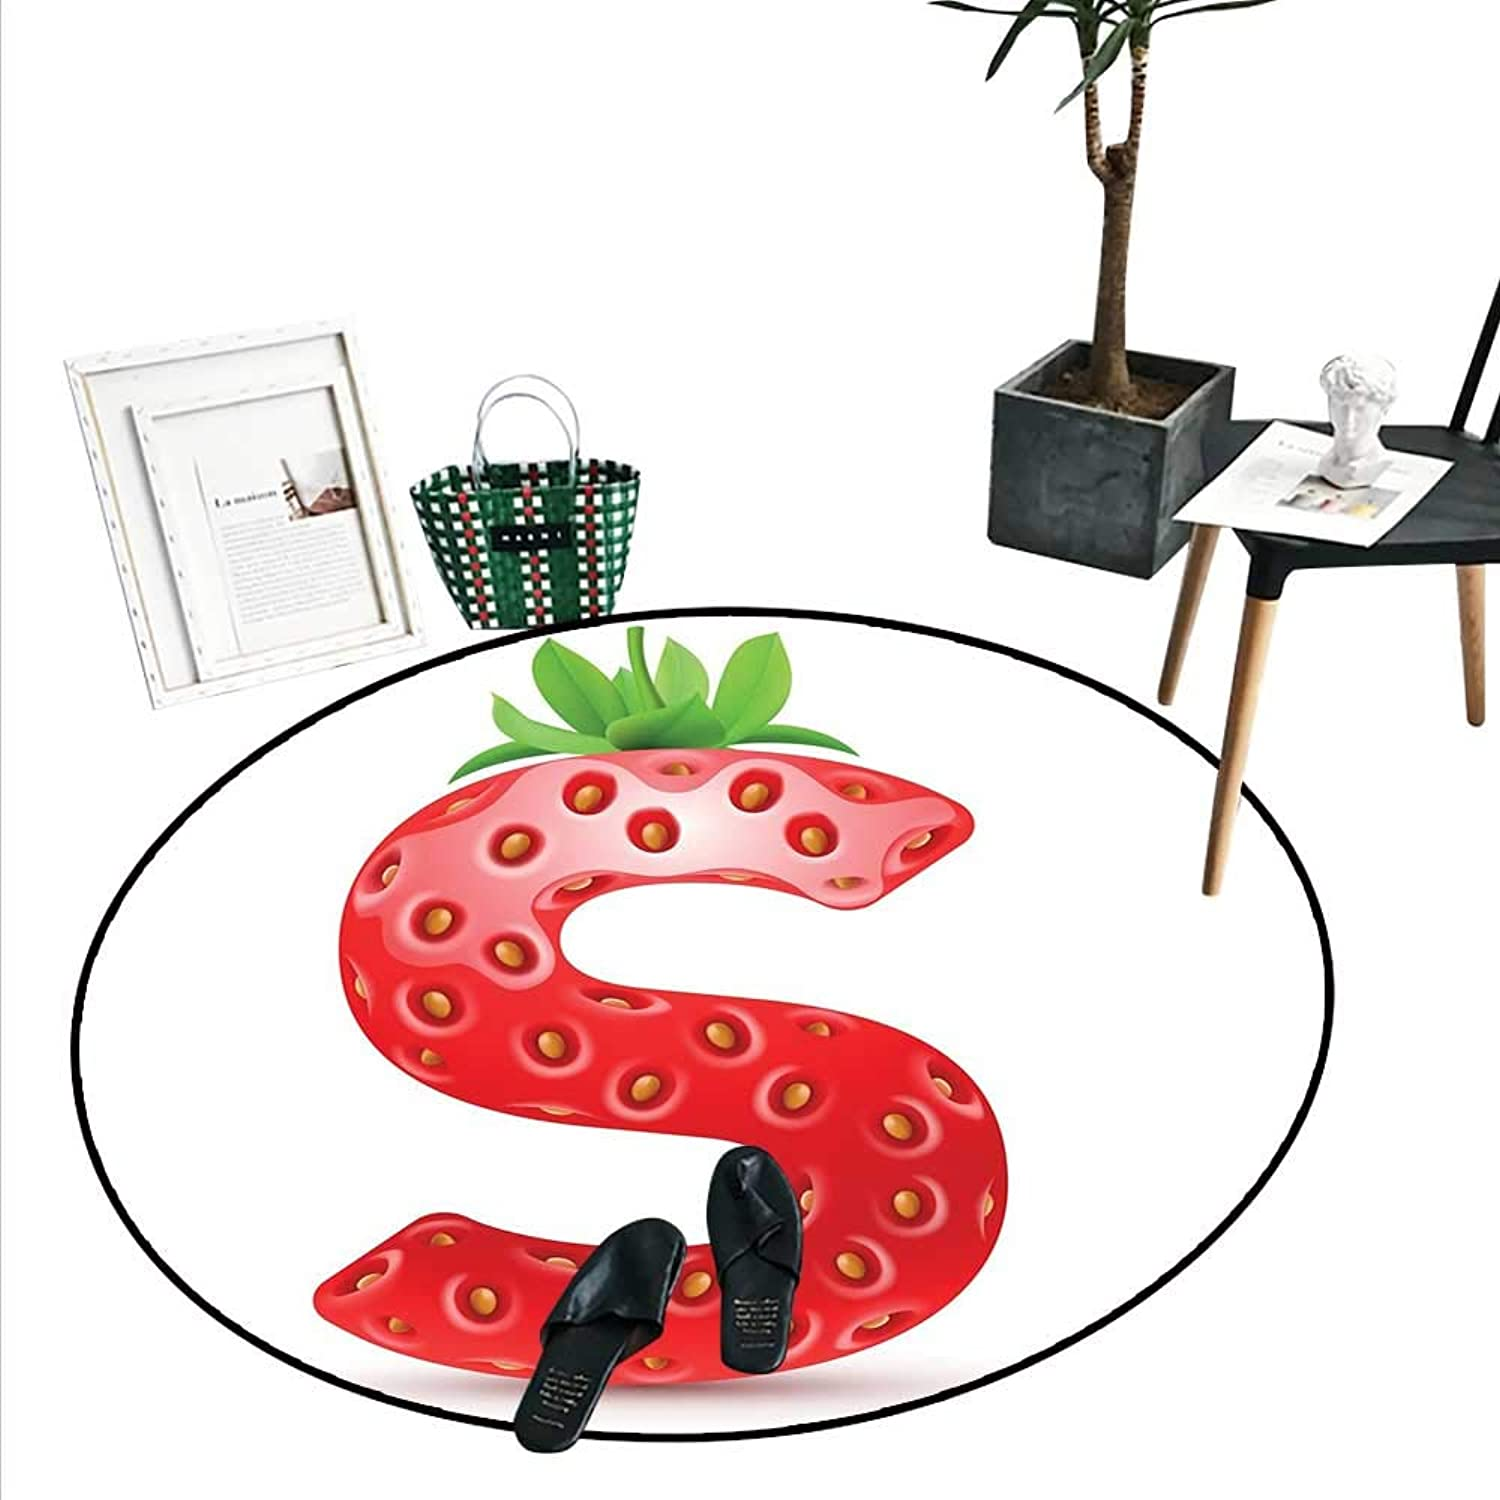 Letter S Round Area Rug Capital S Strawberry Seeds Green Leaves Organic Plant Realistic Circle Rugs Living Room (3'6  Diameter) Vermilion Green orange